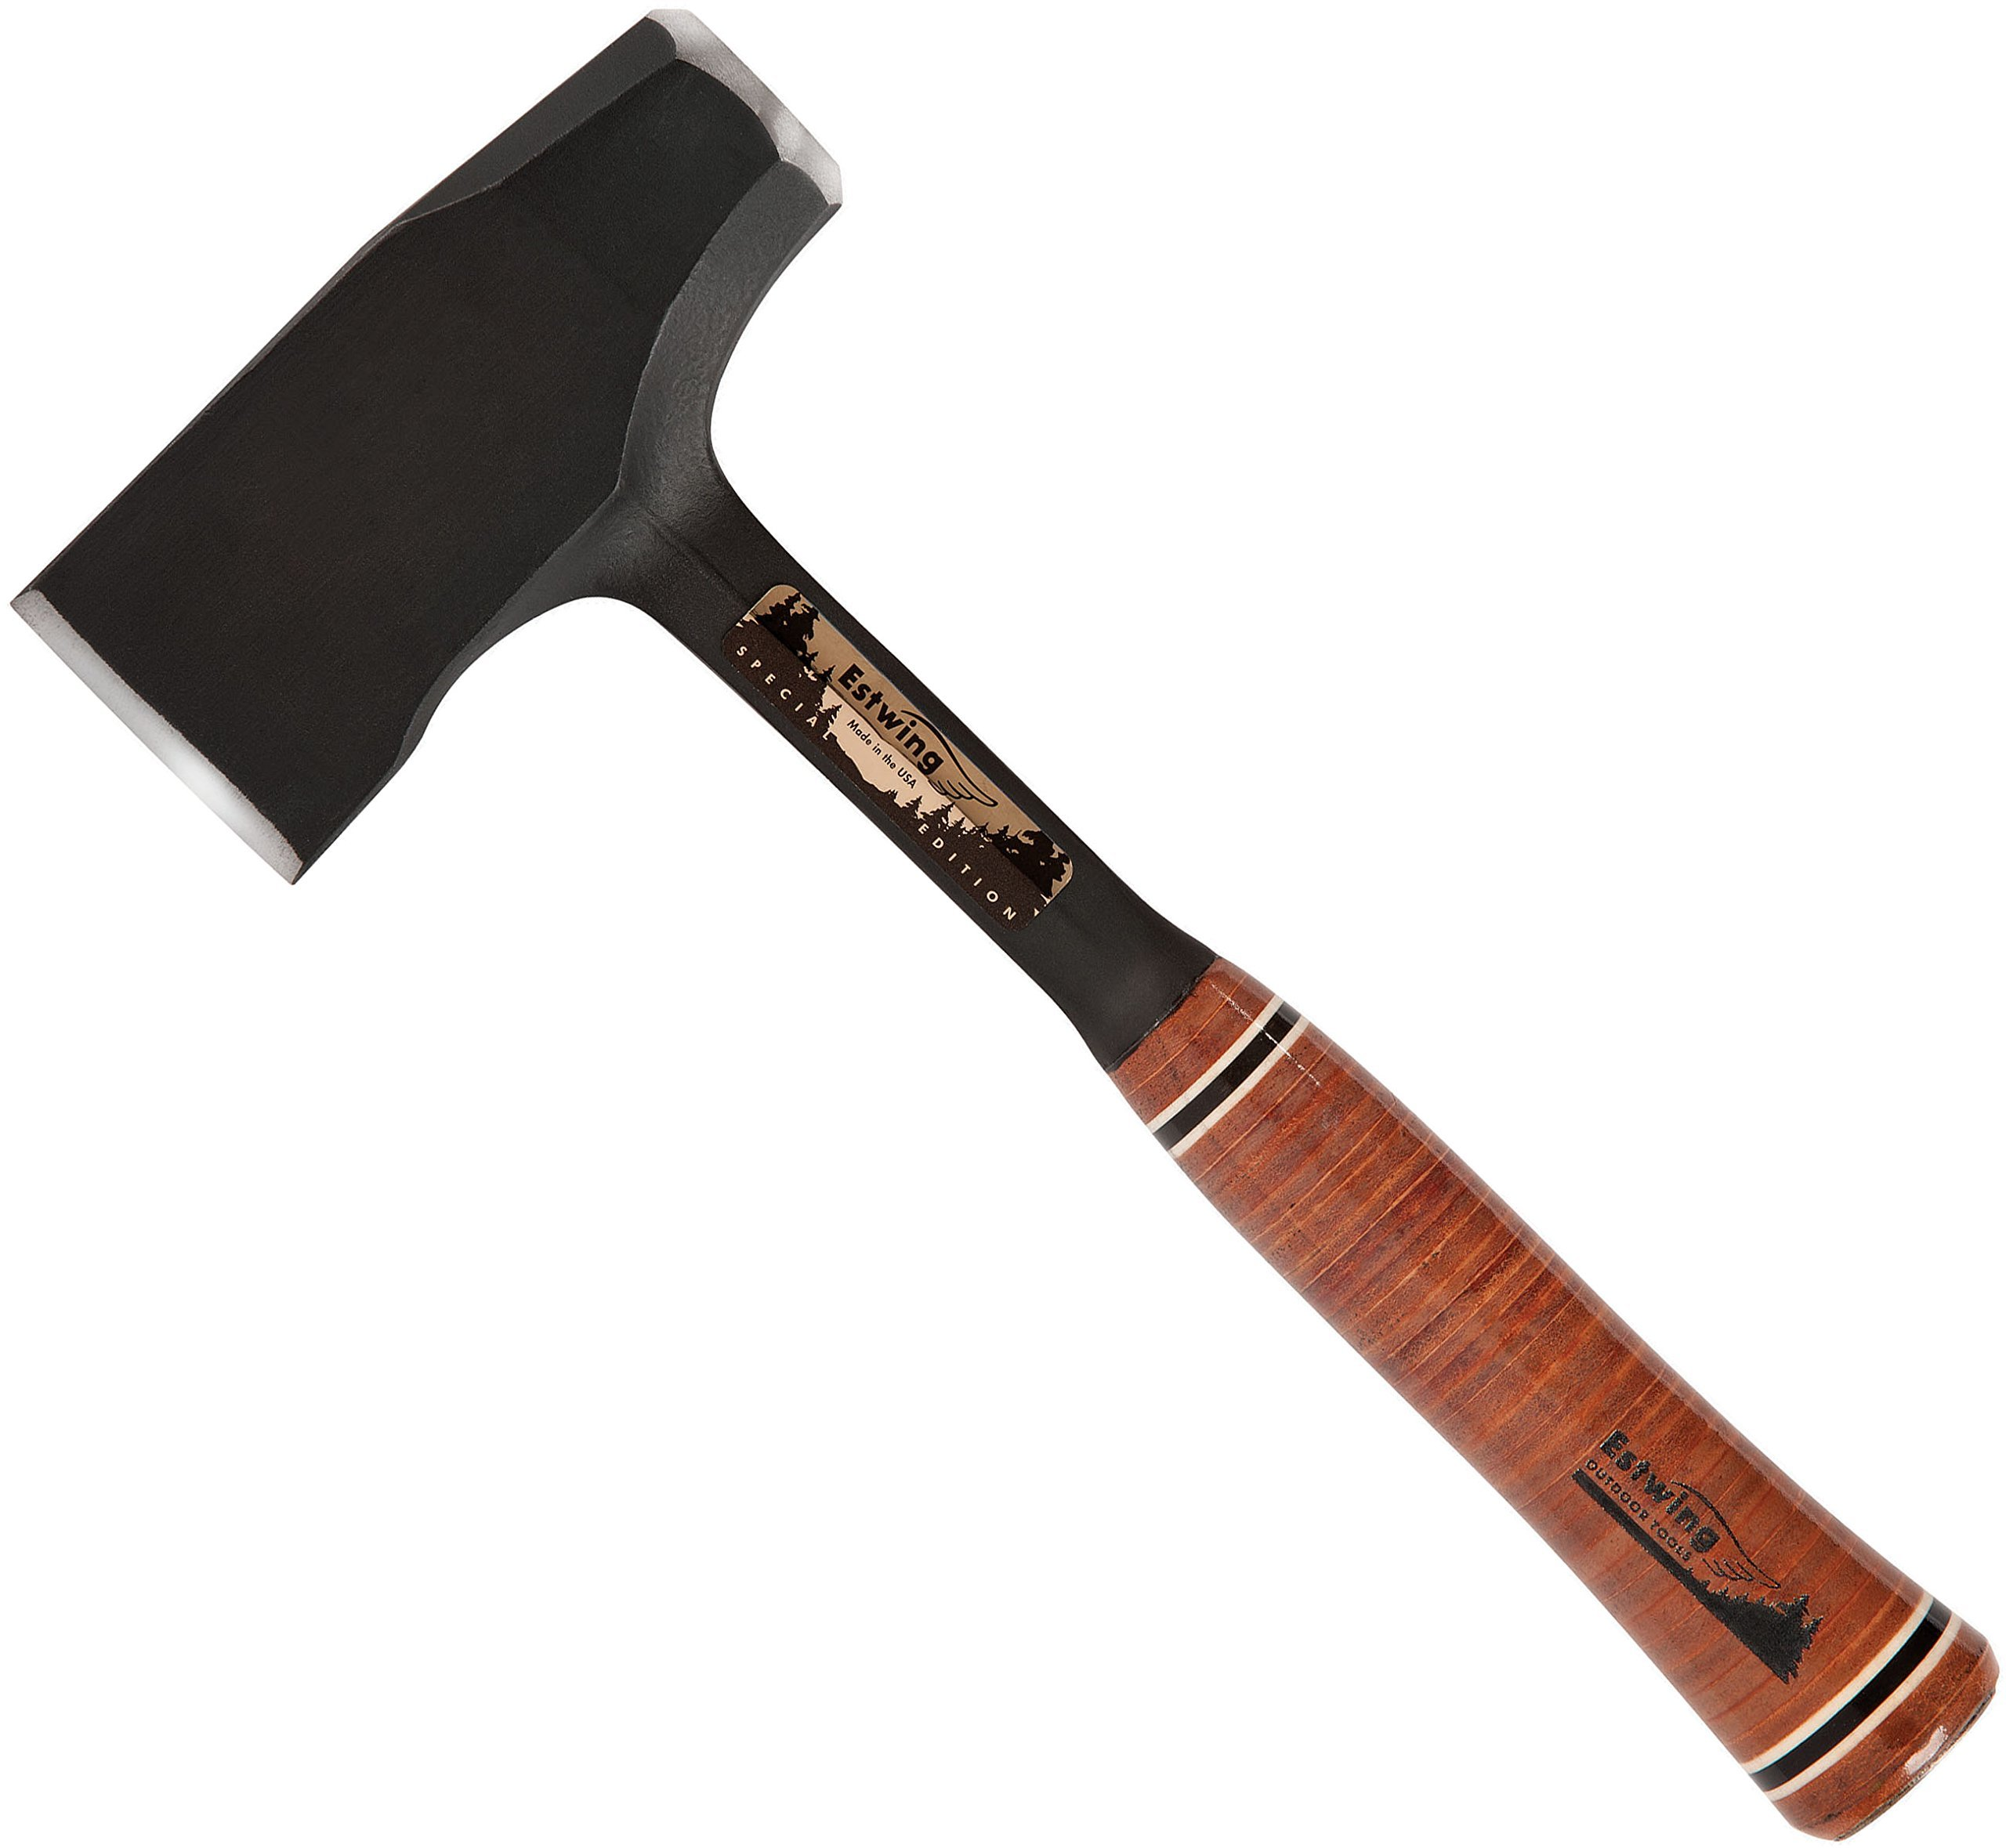 Estwing Special Edition Fireside Friend Axe - 14'' Wood Splitting Maul with Forged Steel Construction & Genuine Leather Grip - EFF4SE